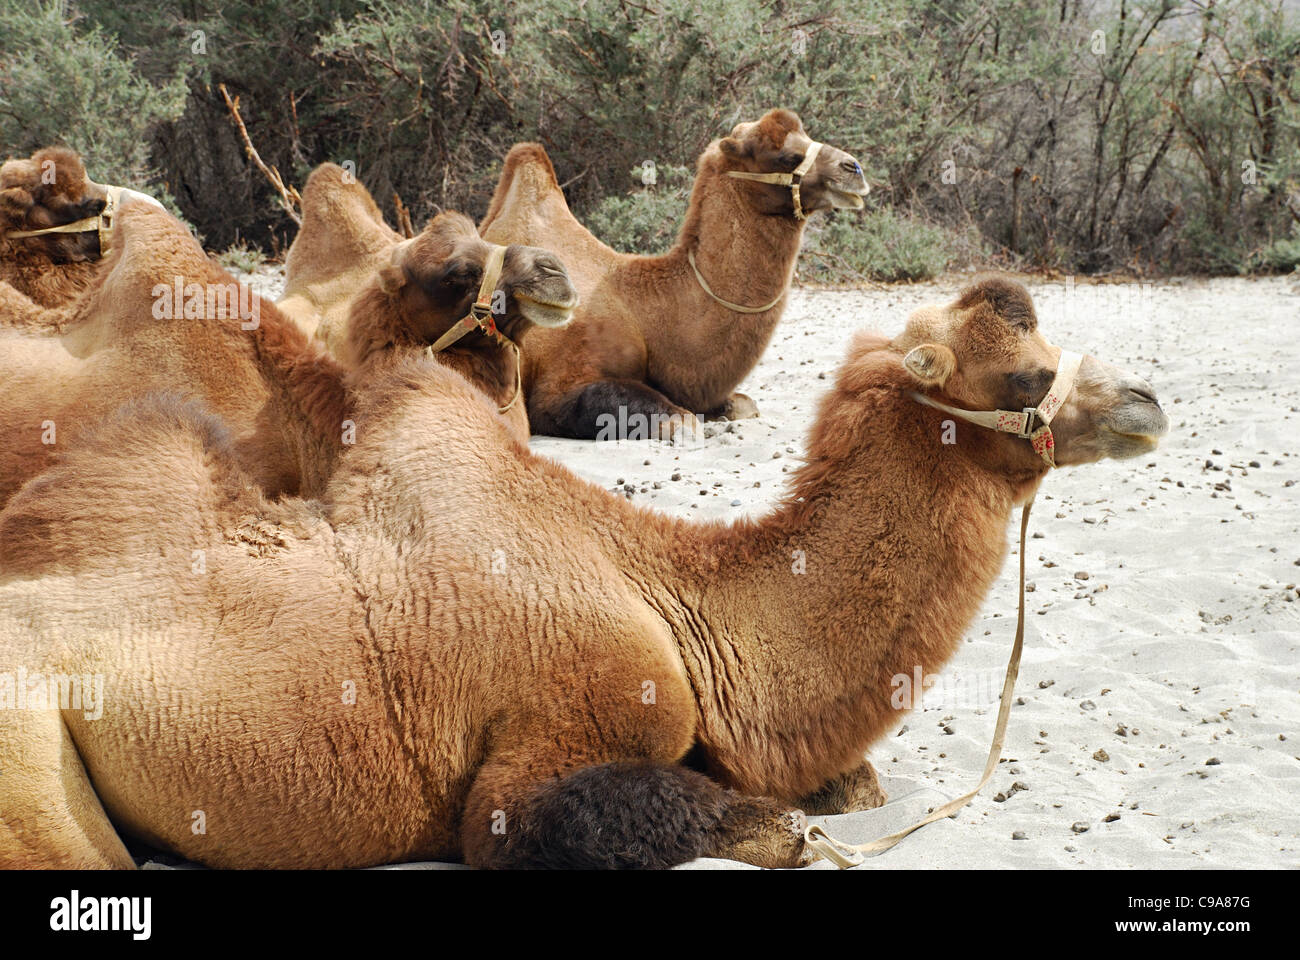 Shaggy Bactrian (two- humped) camels which are shorter and stouter. - Stock Image